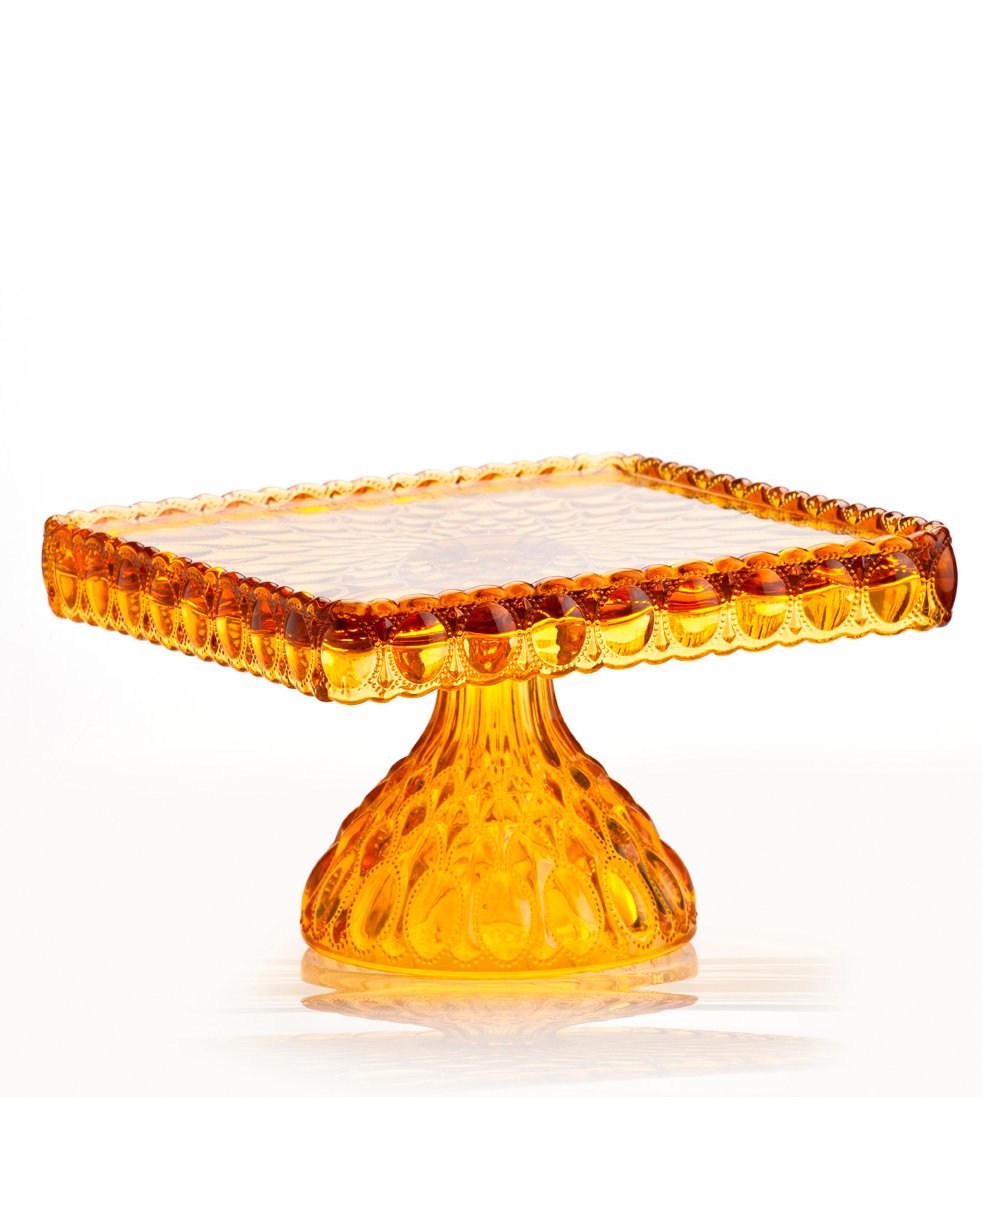 wedding-cake-stands-square-glass-1115.jpeg